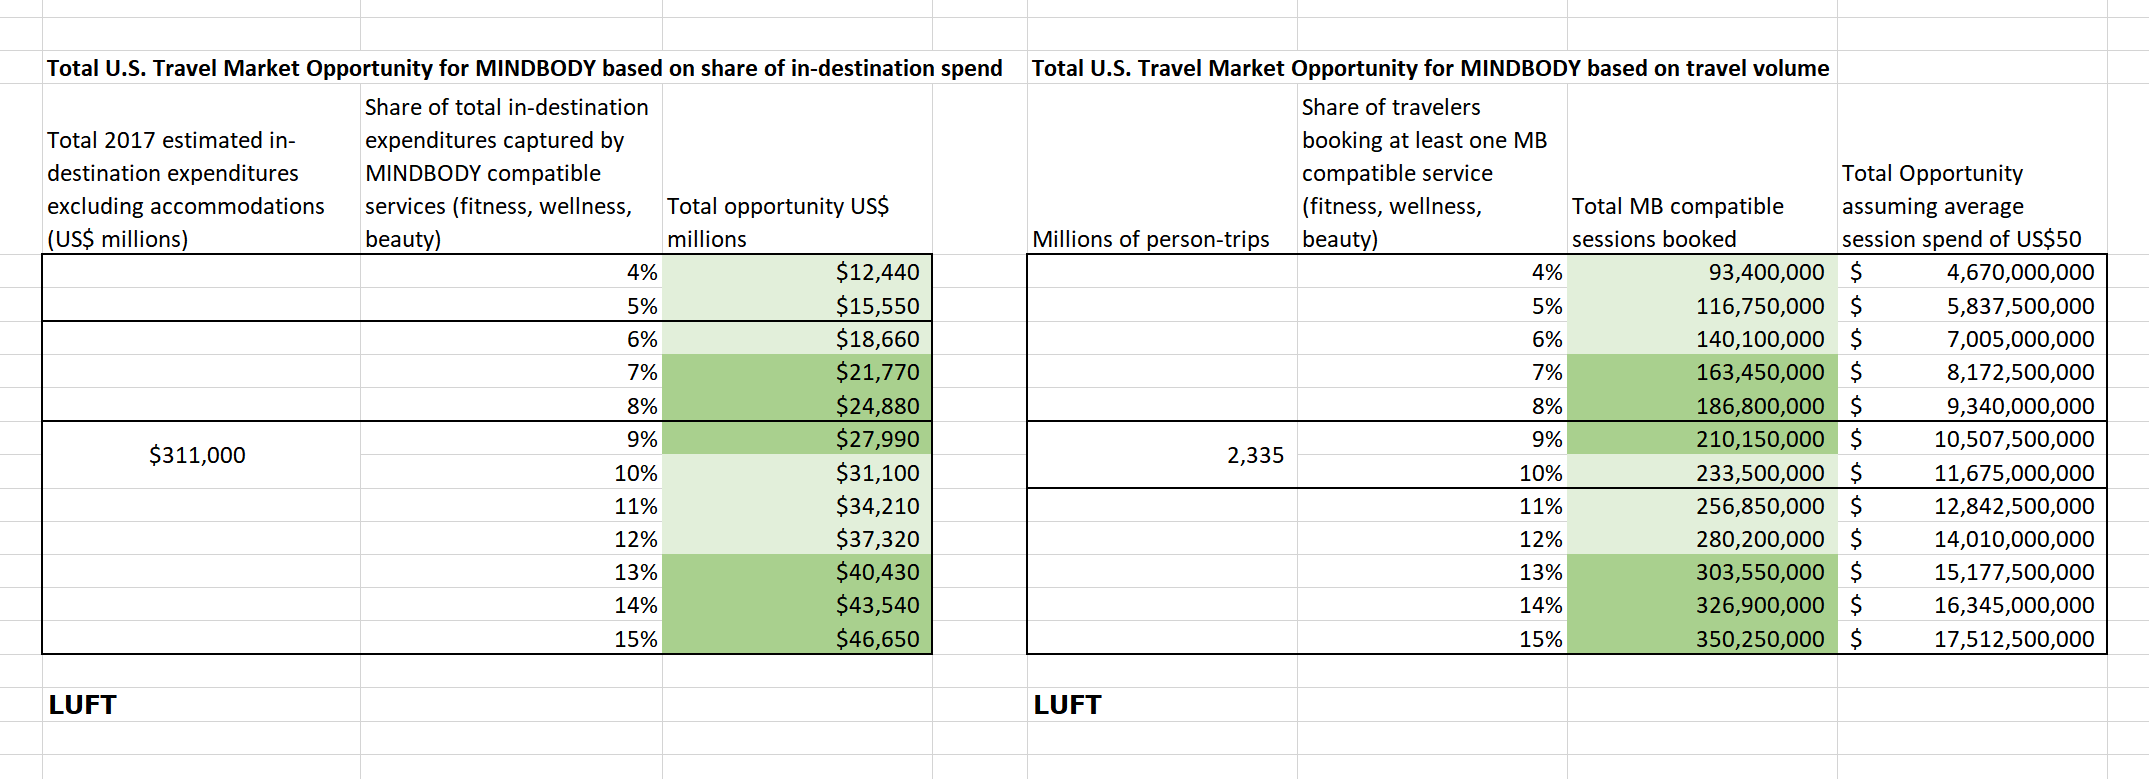 Notes: LUFT calculations expenditure and person-trips data originates from the  U.S. Travel Association .